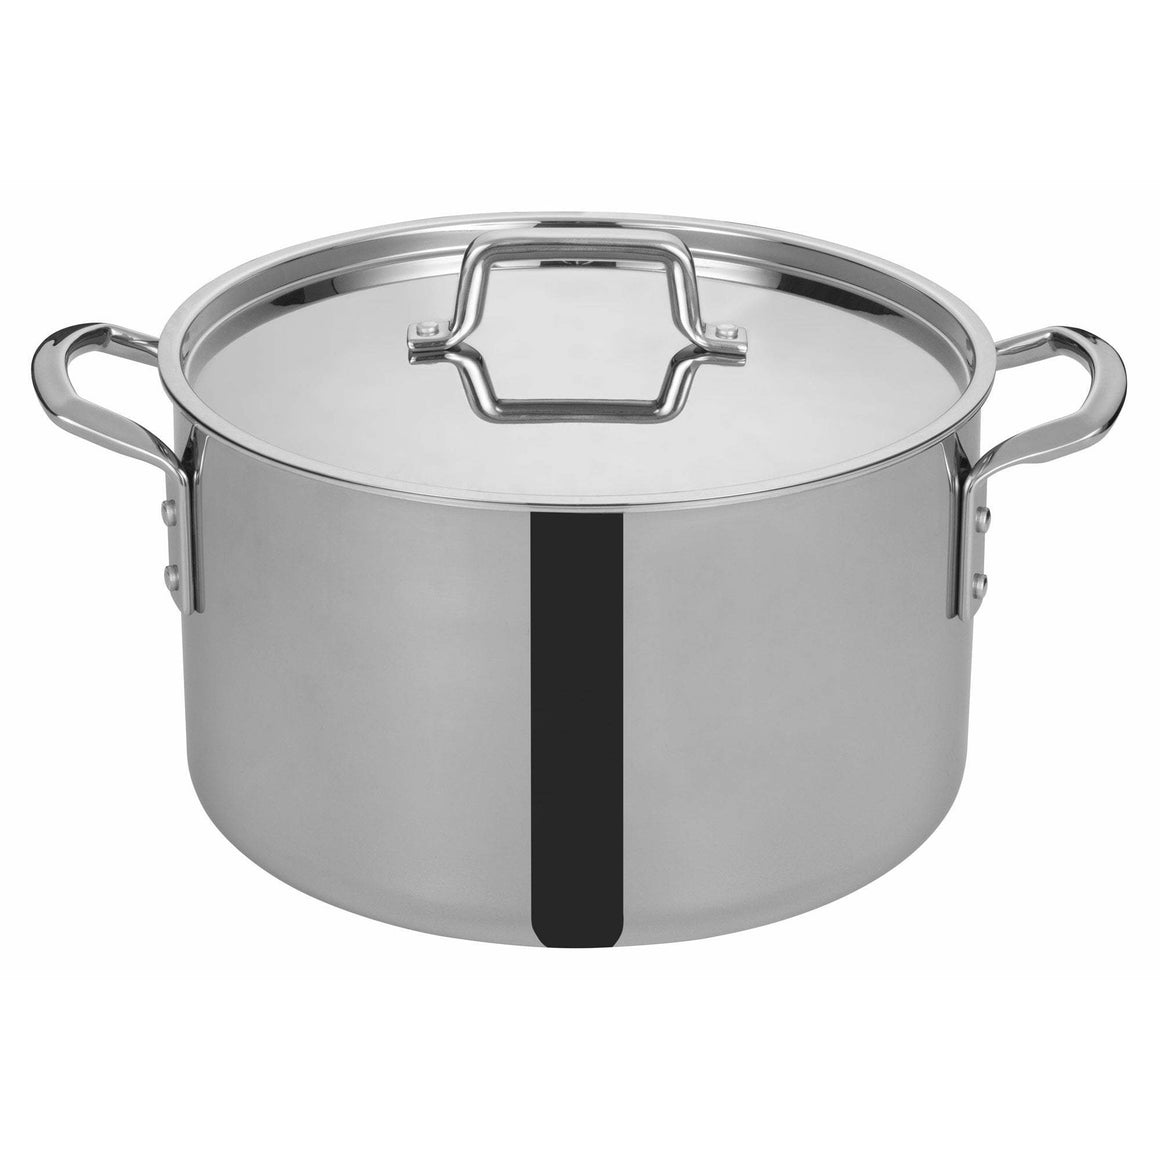 "Winco - TGSP-16 - TRI-GEN™ Tri-Ply Stock Pot w/Cover, 16Qt, 12-1/2""Dia - Cookware"